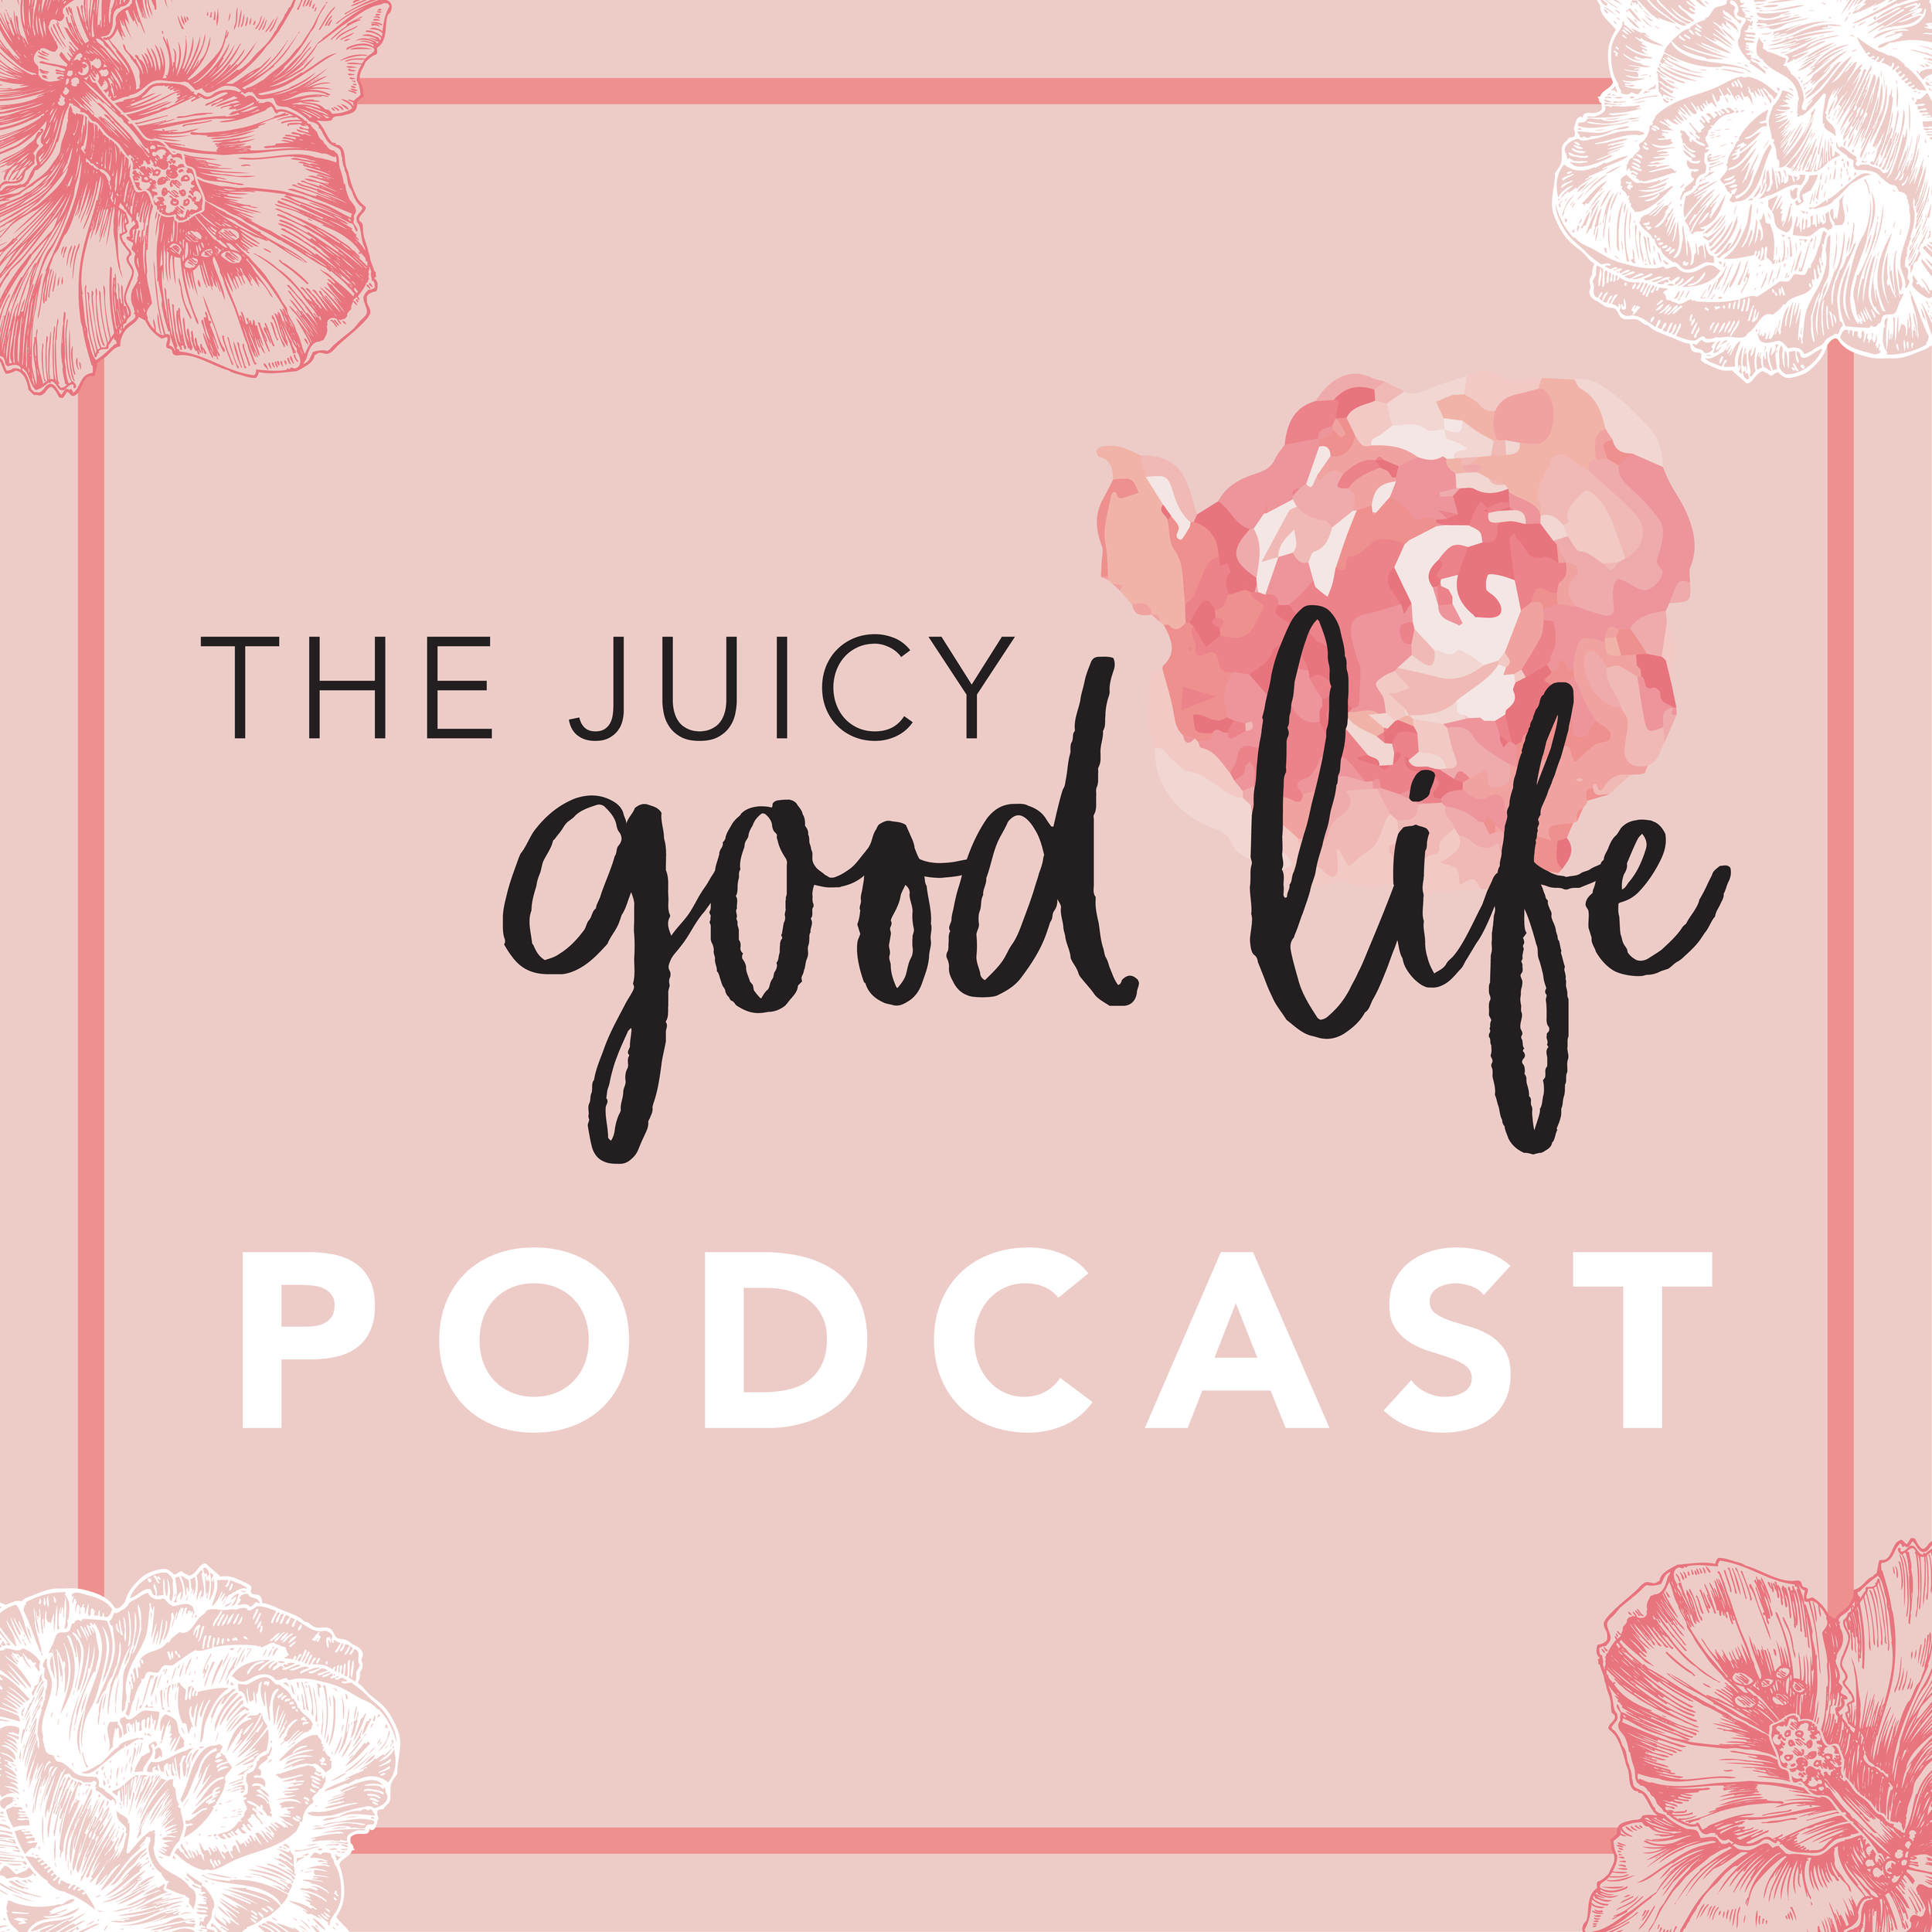 Don't forget to subscribe to our podcast on your favorite channel! -